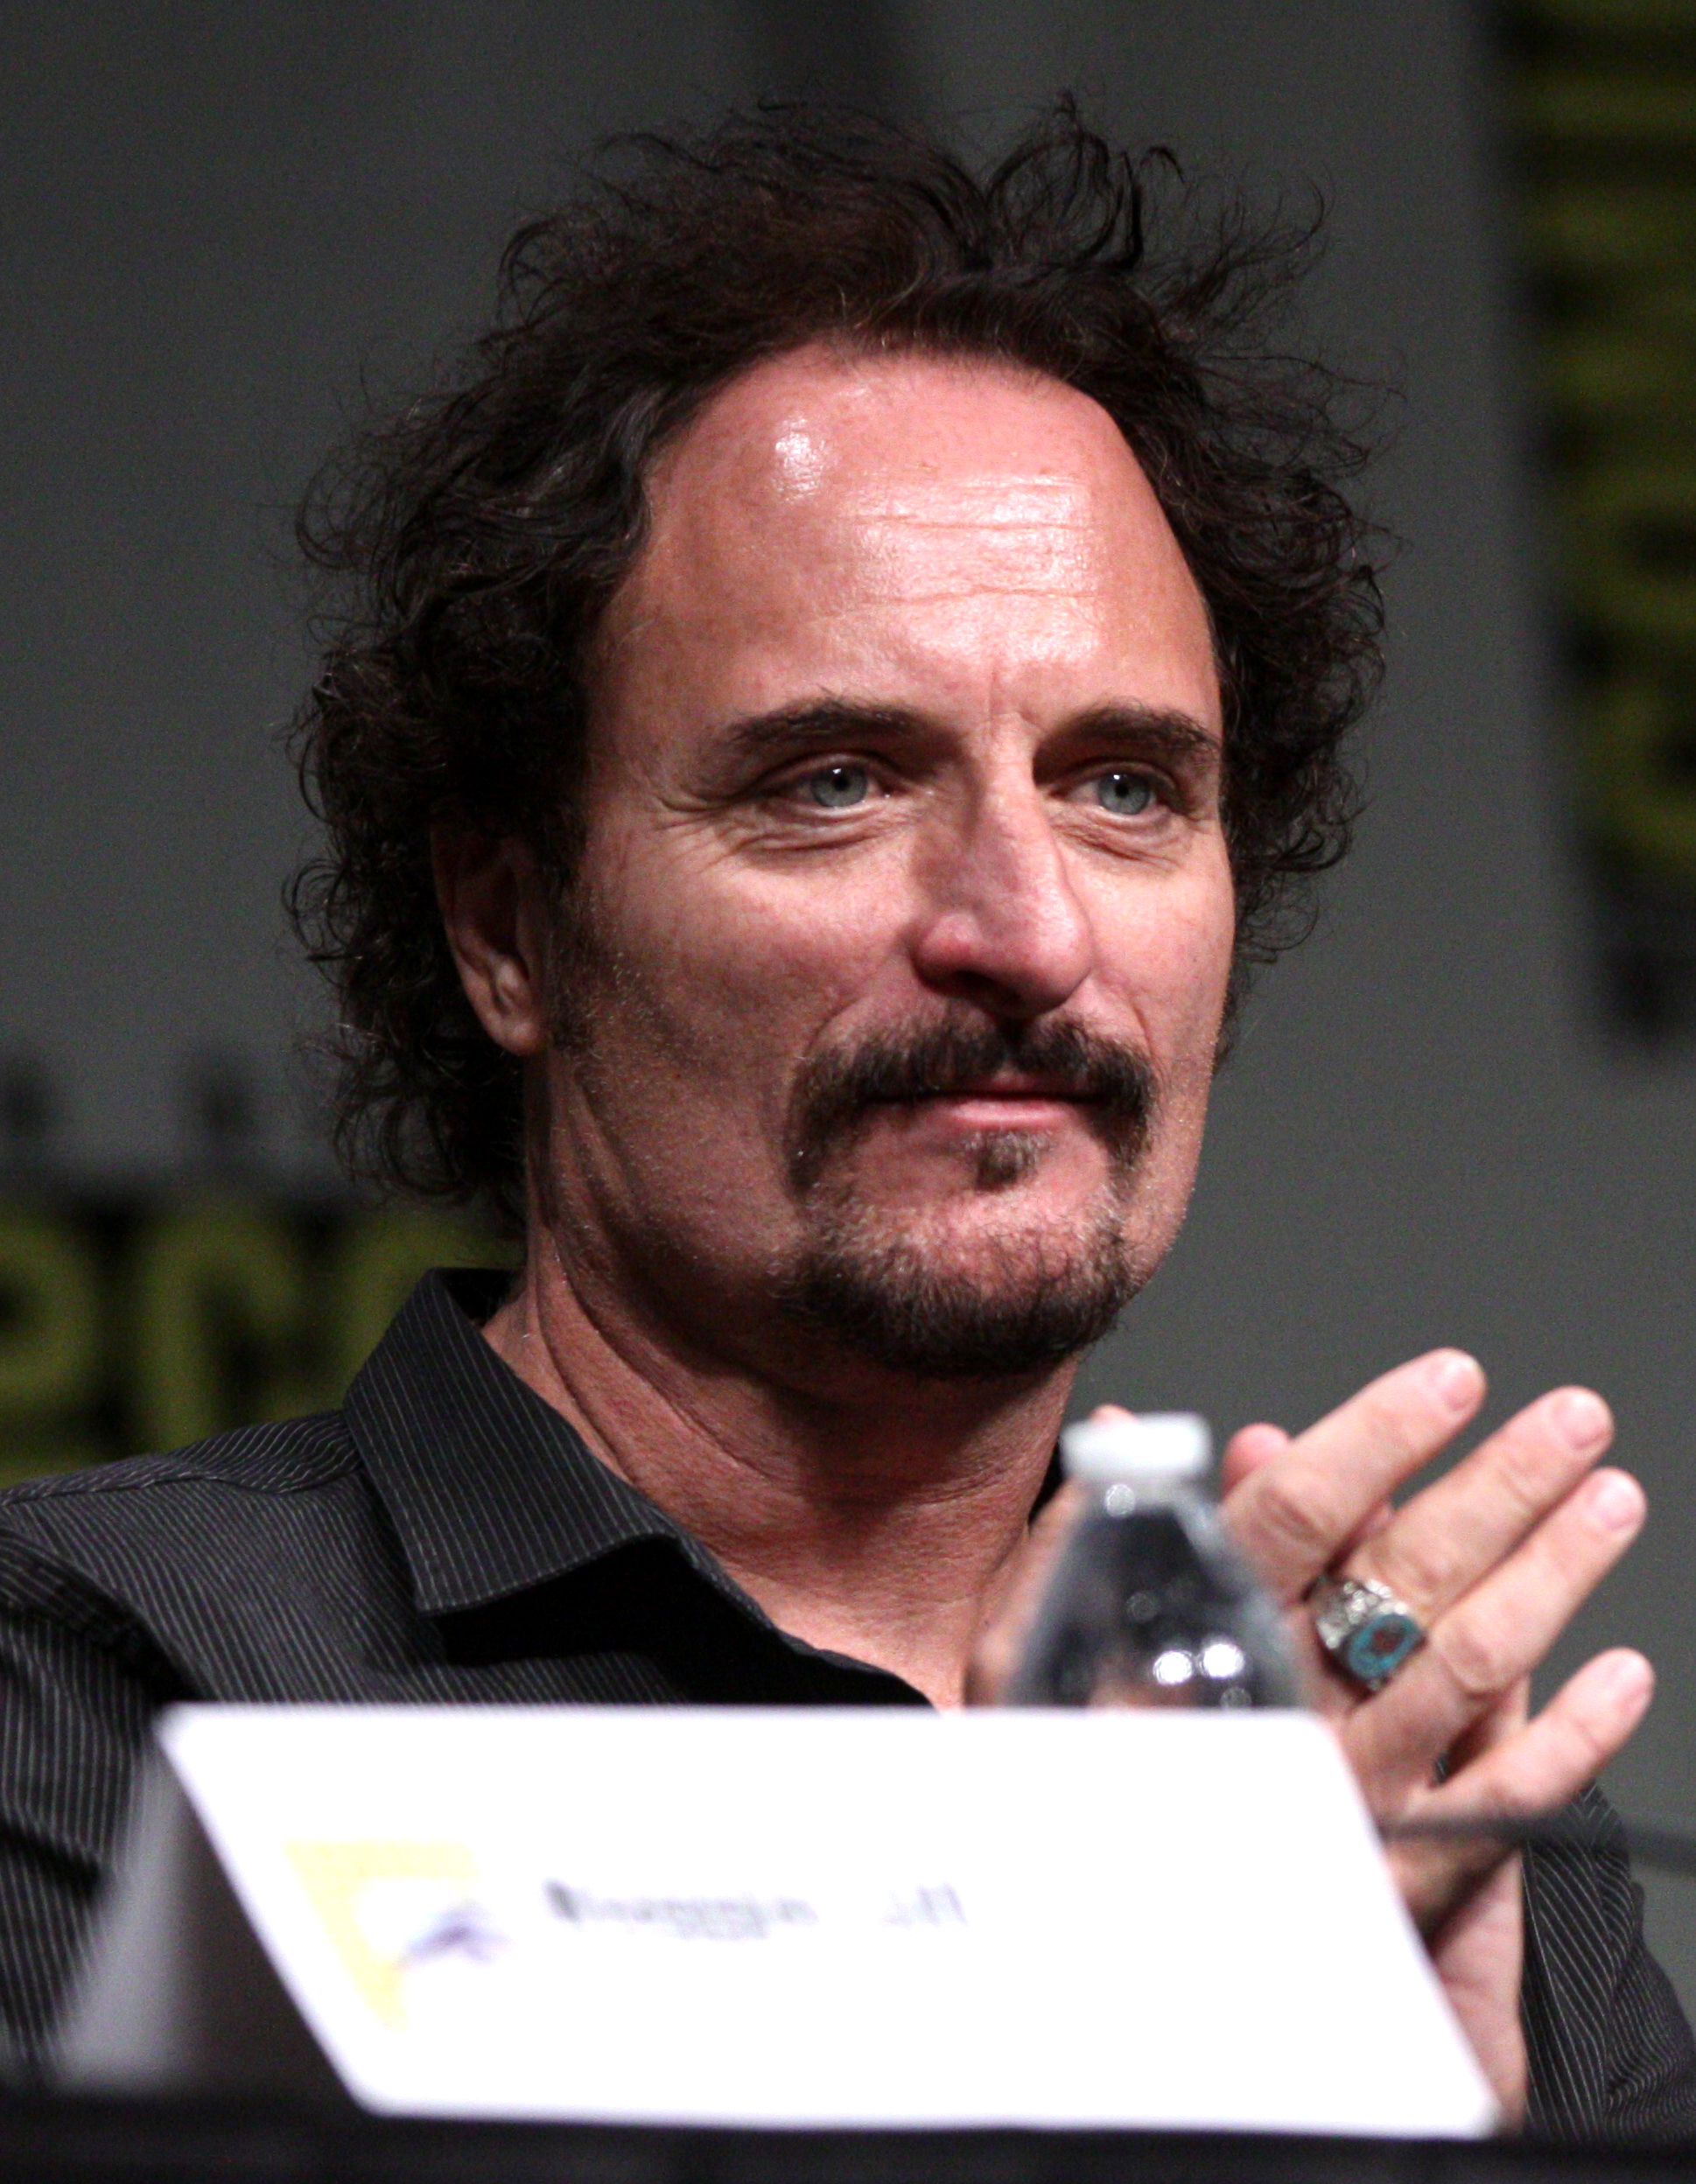 The 60-year old son of father (?) and mother(?) Kim Coates in 2018 photo. Kim Coates earned a  million dollar salary - leaving the net worth at 2.5 million in 2018